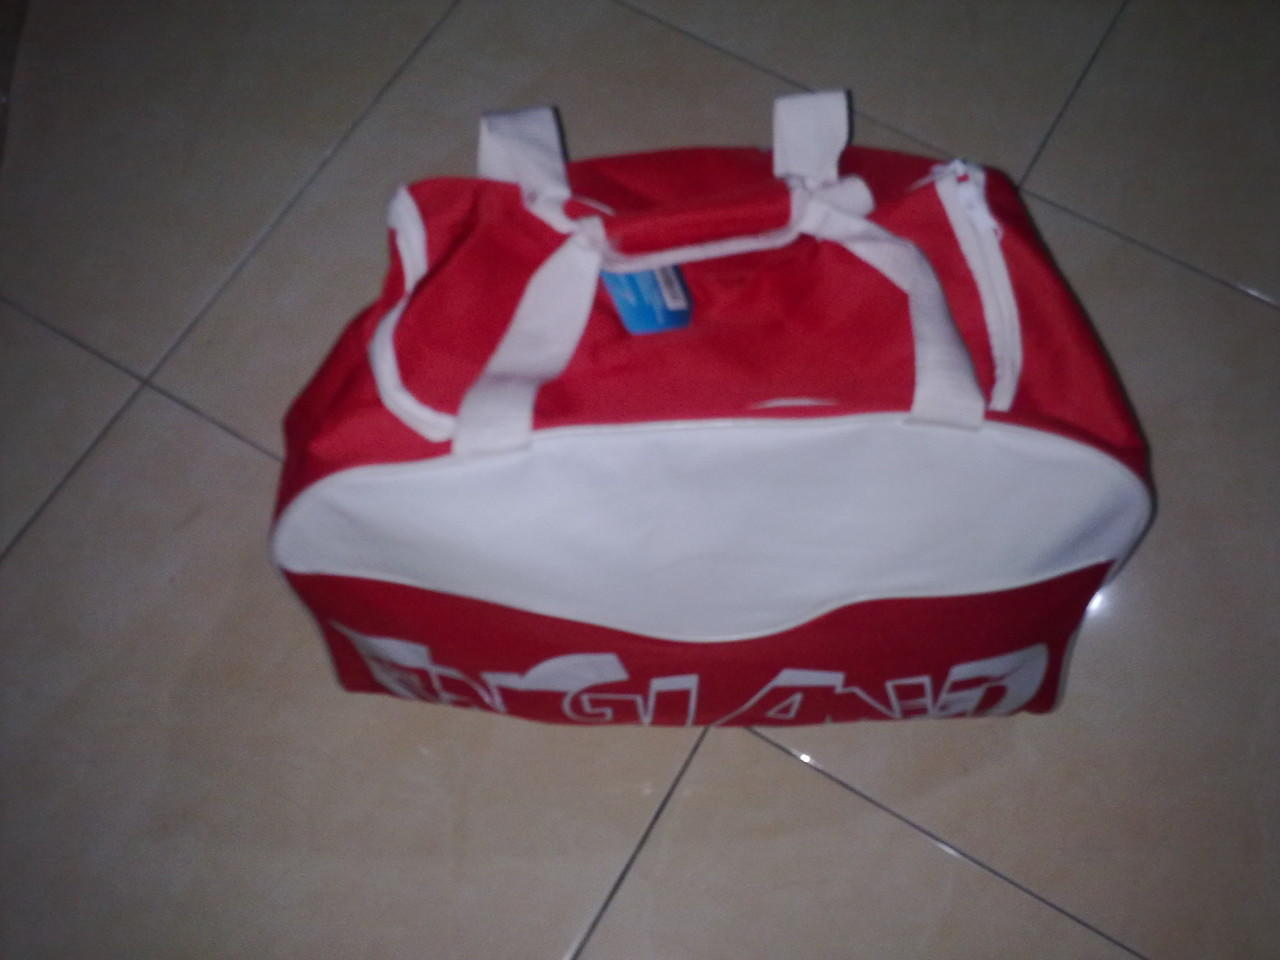 TAS ENGLAND OFFICIAL MERCHANDISE FIFA WORLD CUP 2014